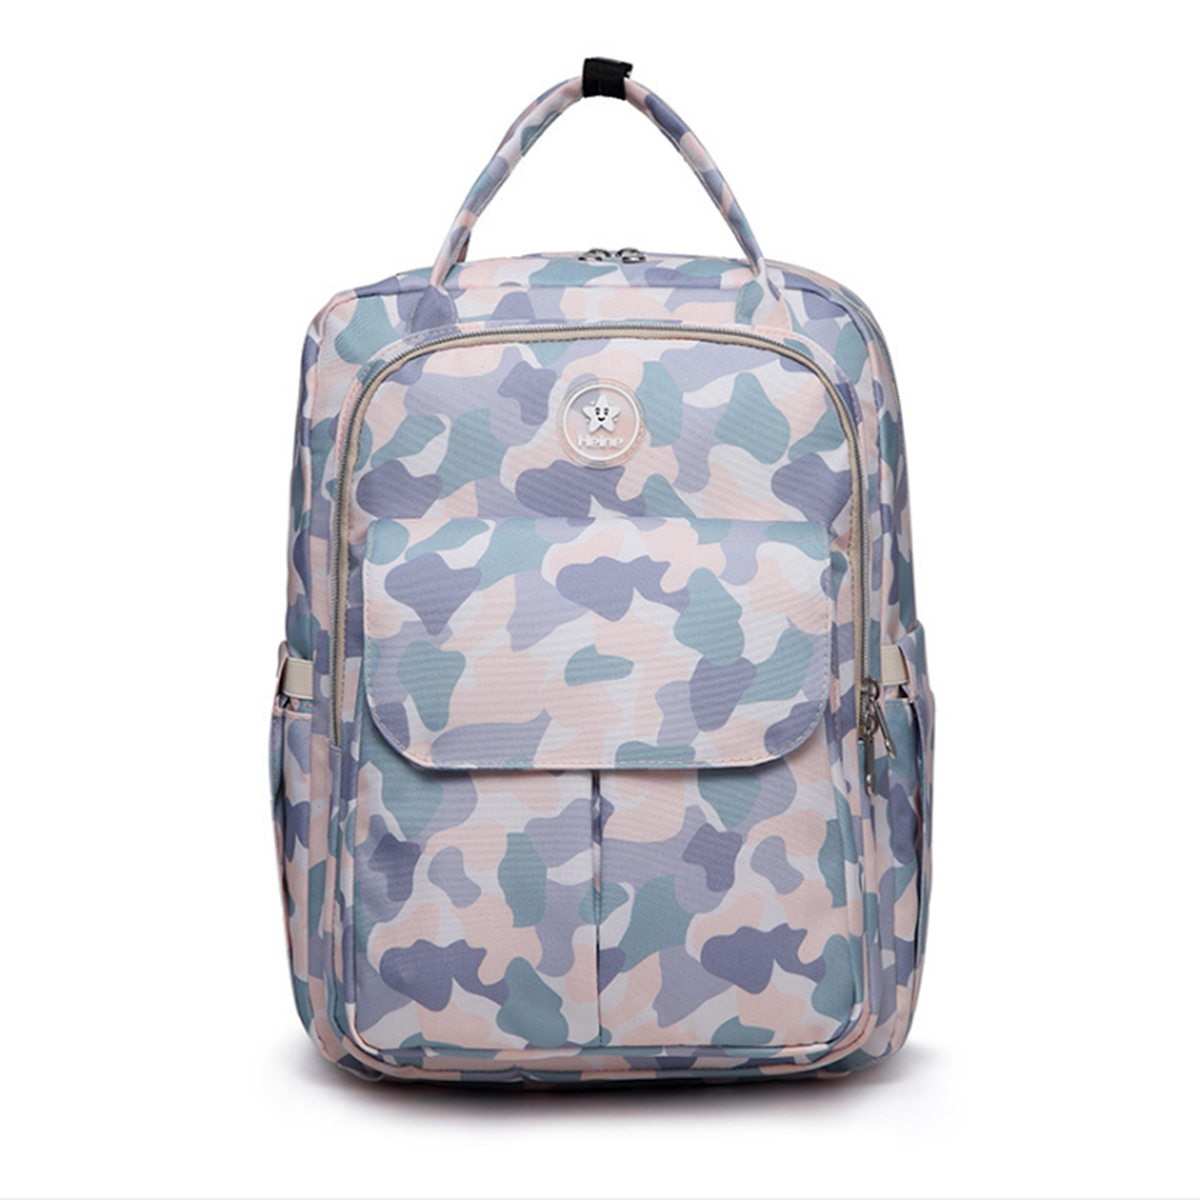 15L Mummy Backpack Waterproof Baby Diaper Nappy Changing Rucksack Travel Bag